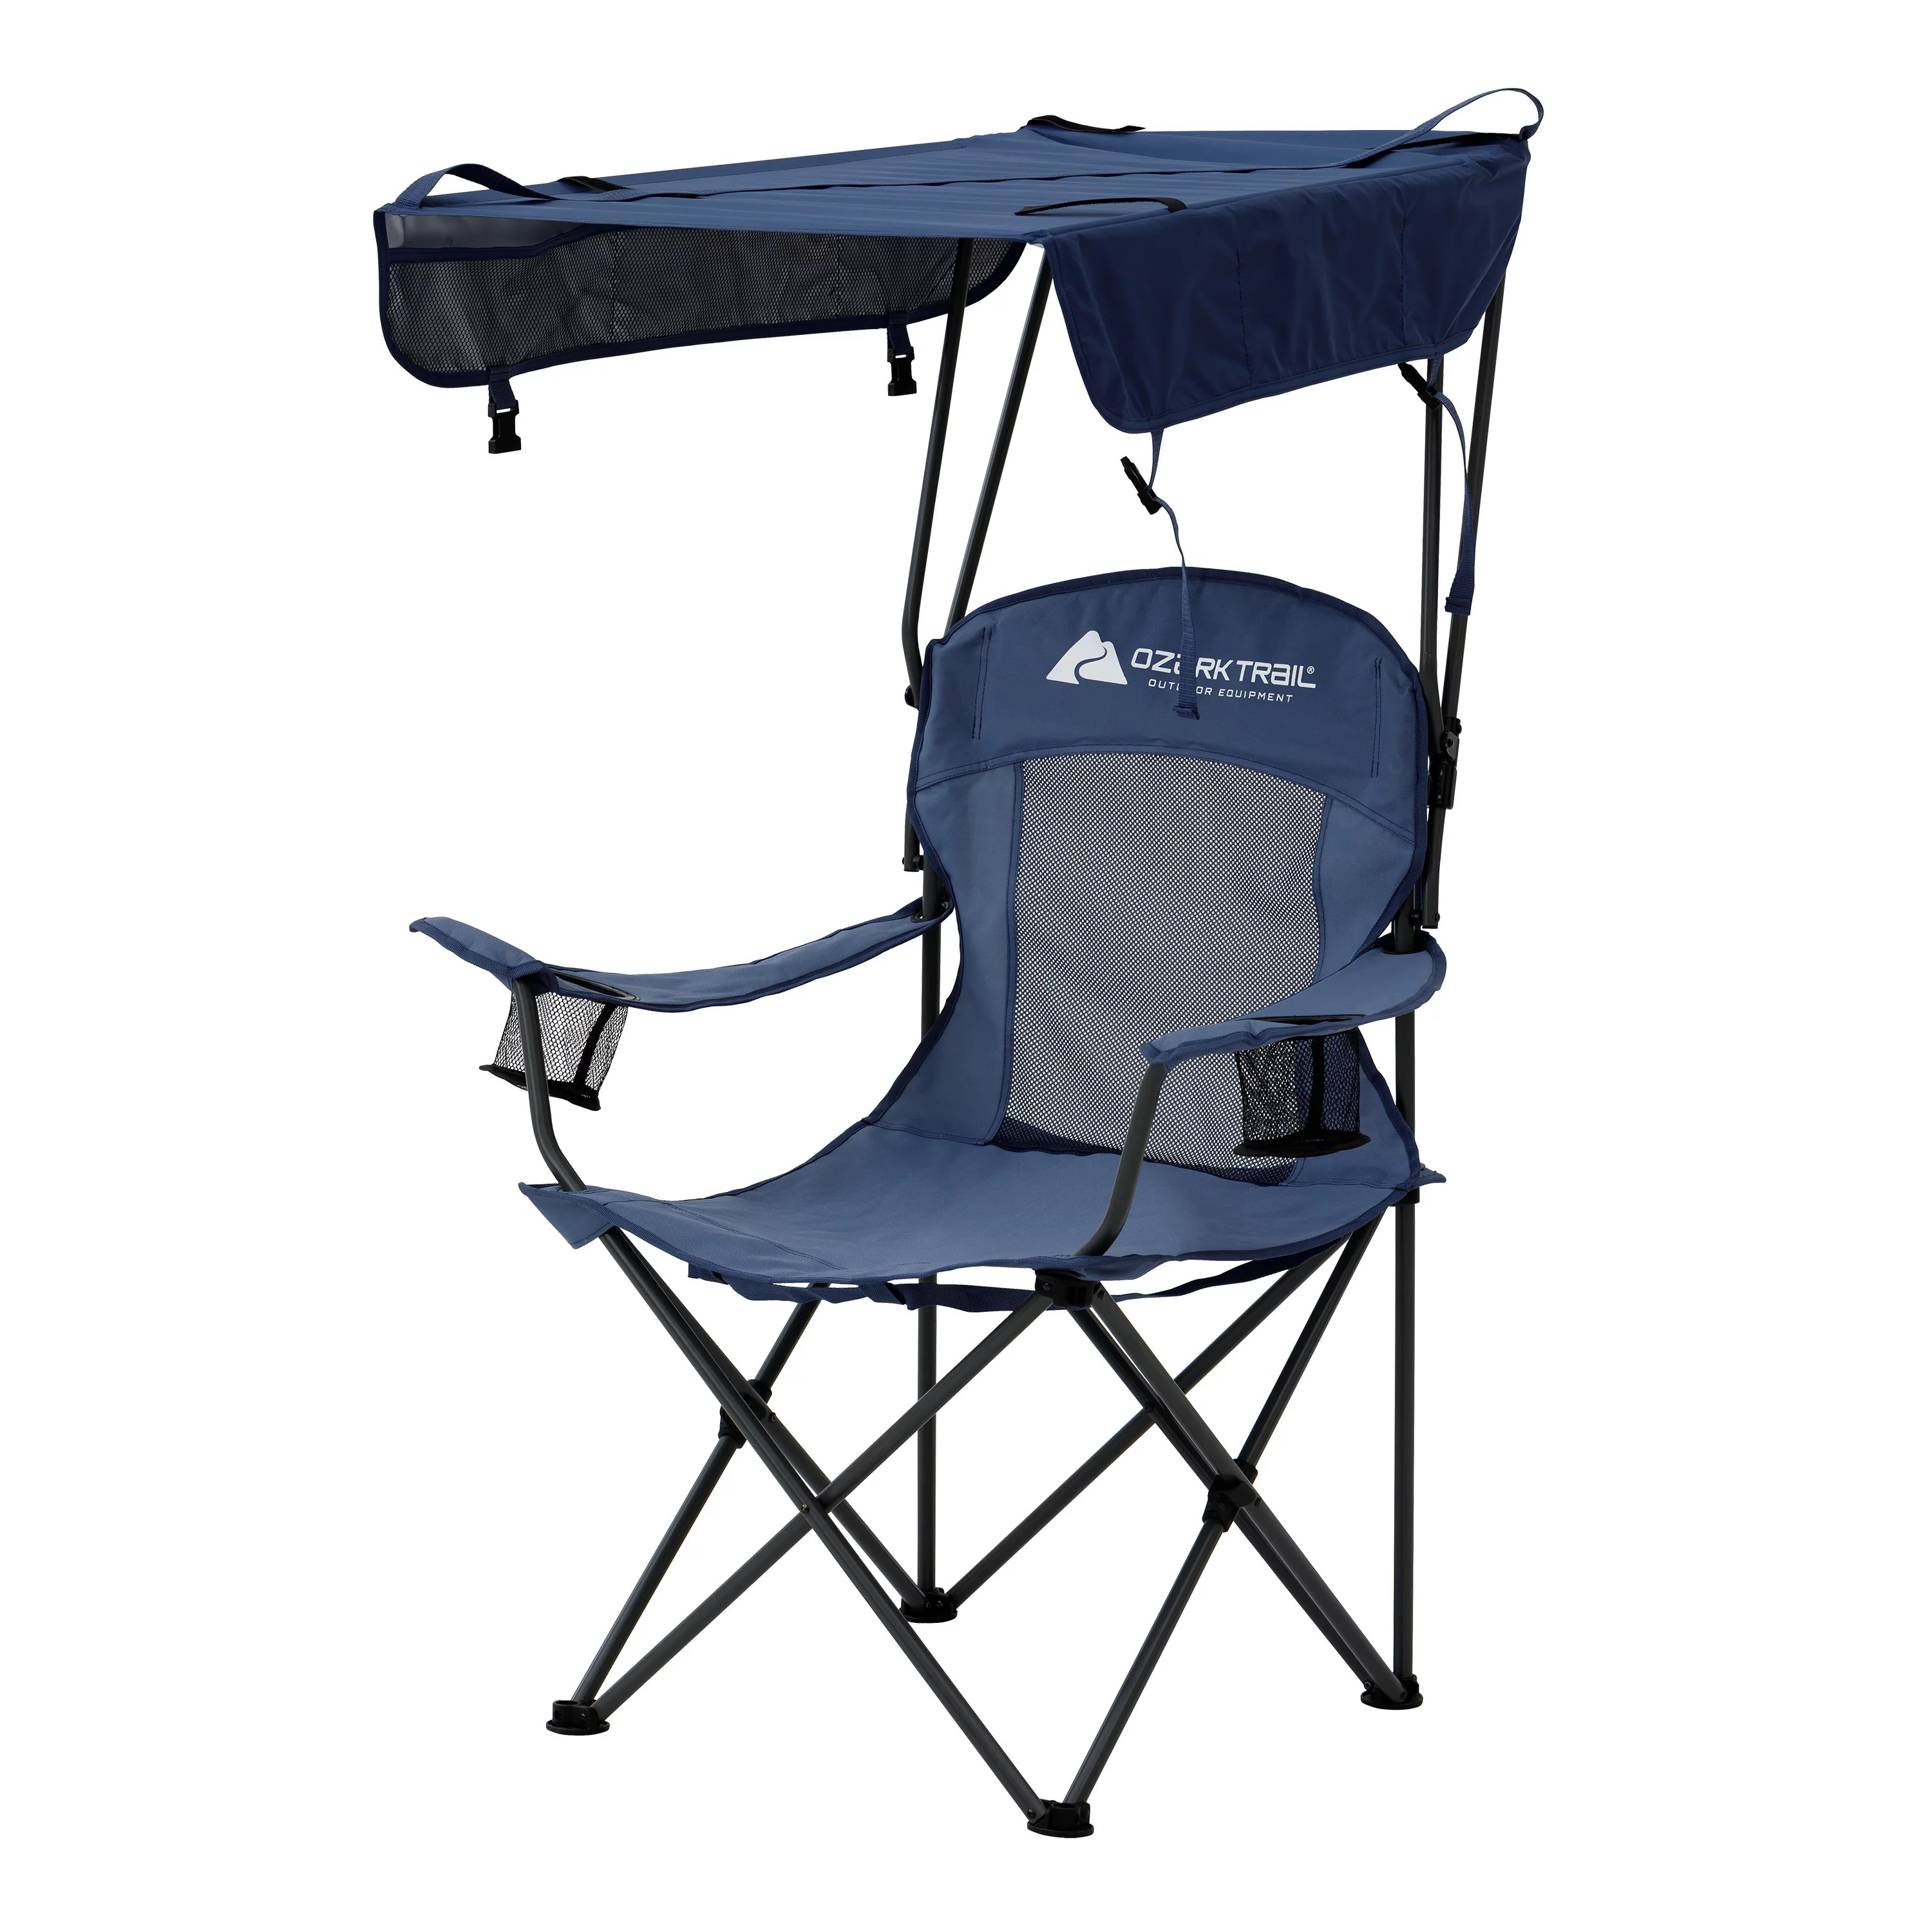 Fold Up Chair With Canopy Ozark Trail Sand Island Shaded Canopy Camping Chair With Cup Holders